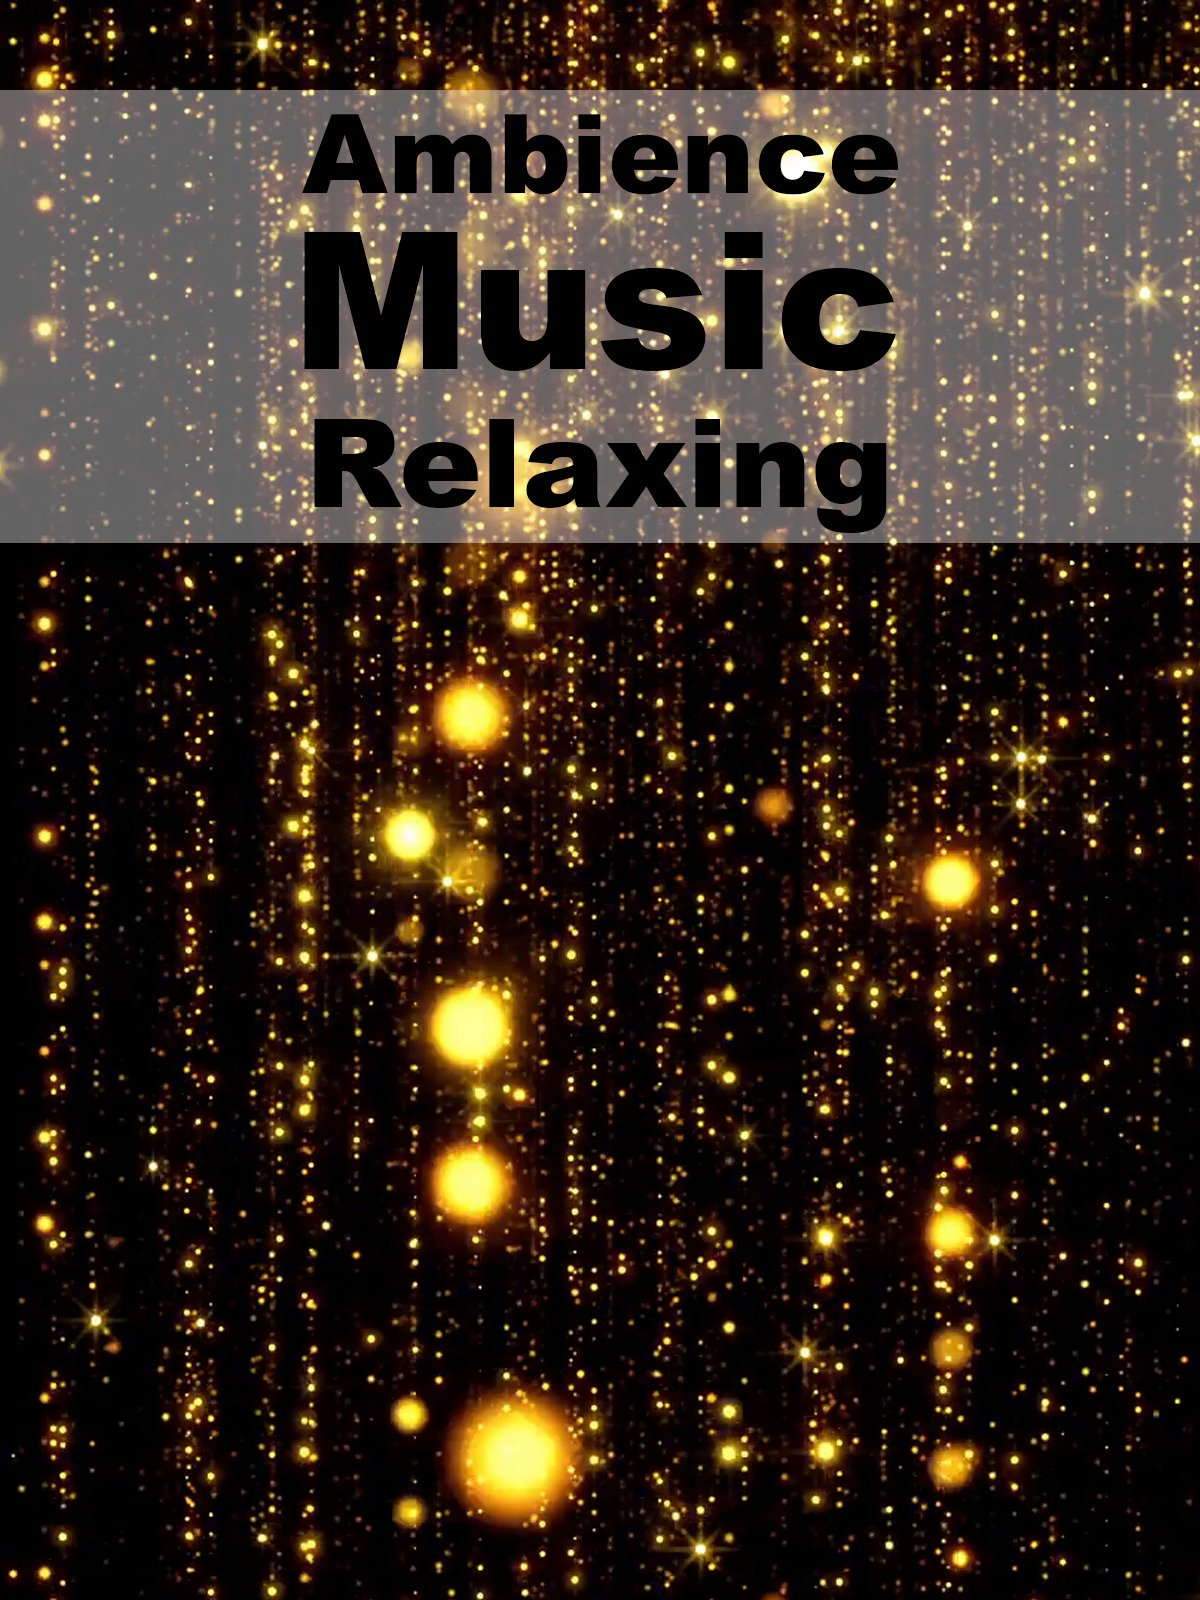 Ambience Music Relaxing